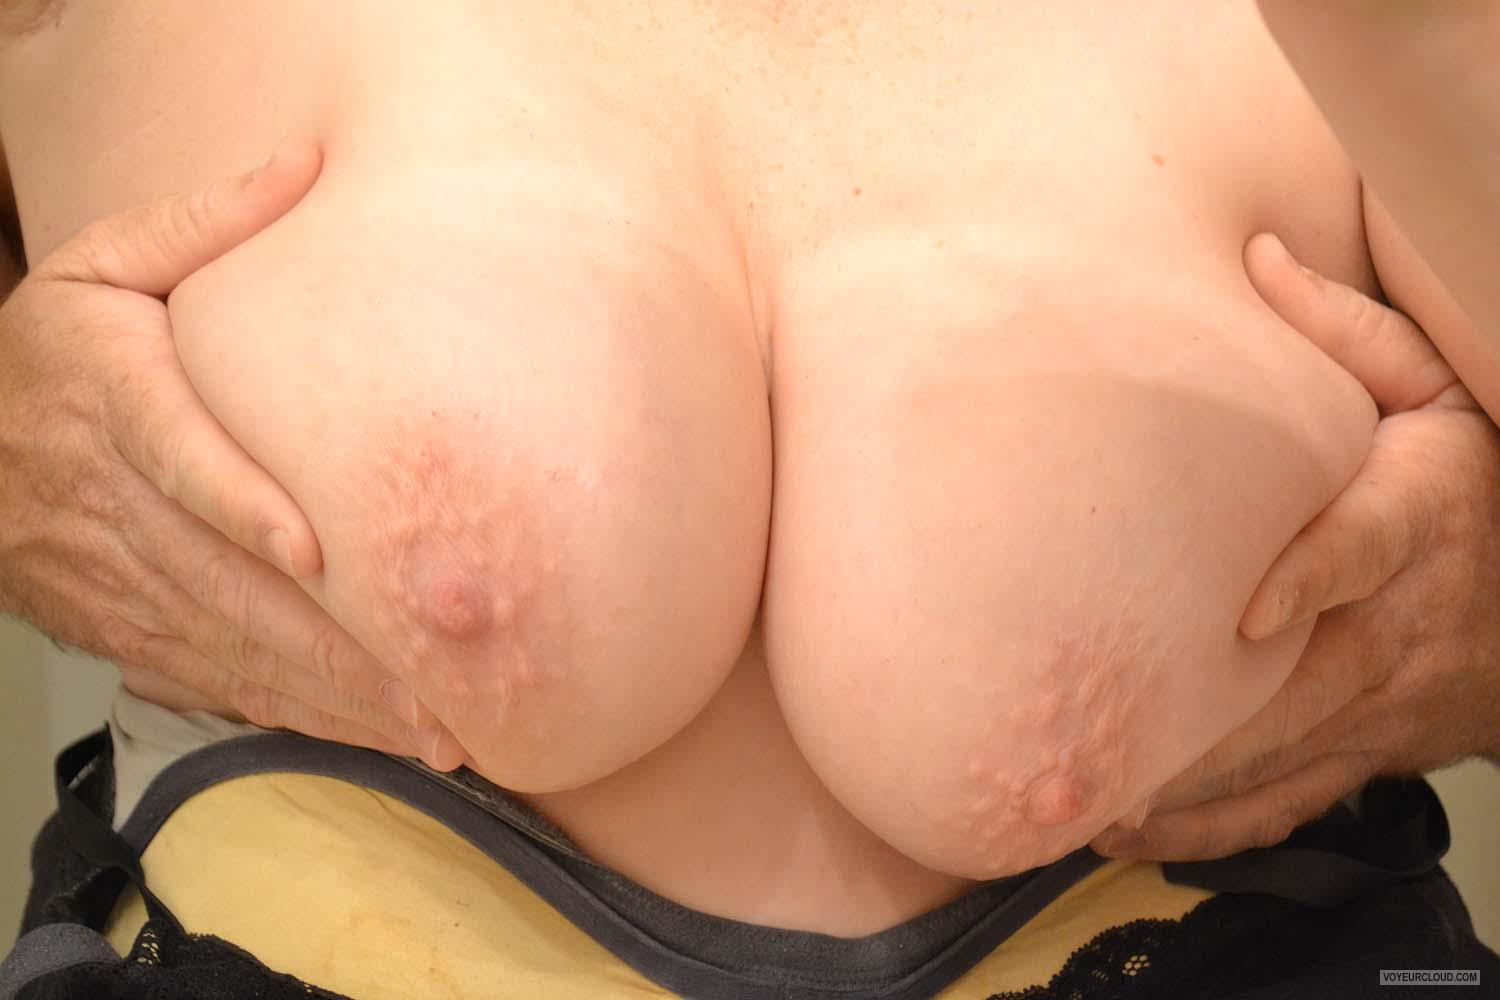 Tit Flash: Wife's Very Big Tits - Getting Squeeze from United States